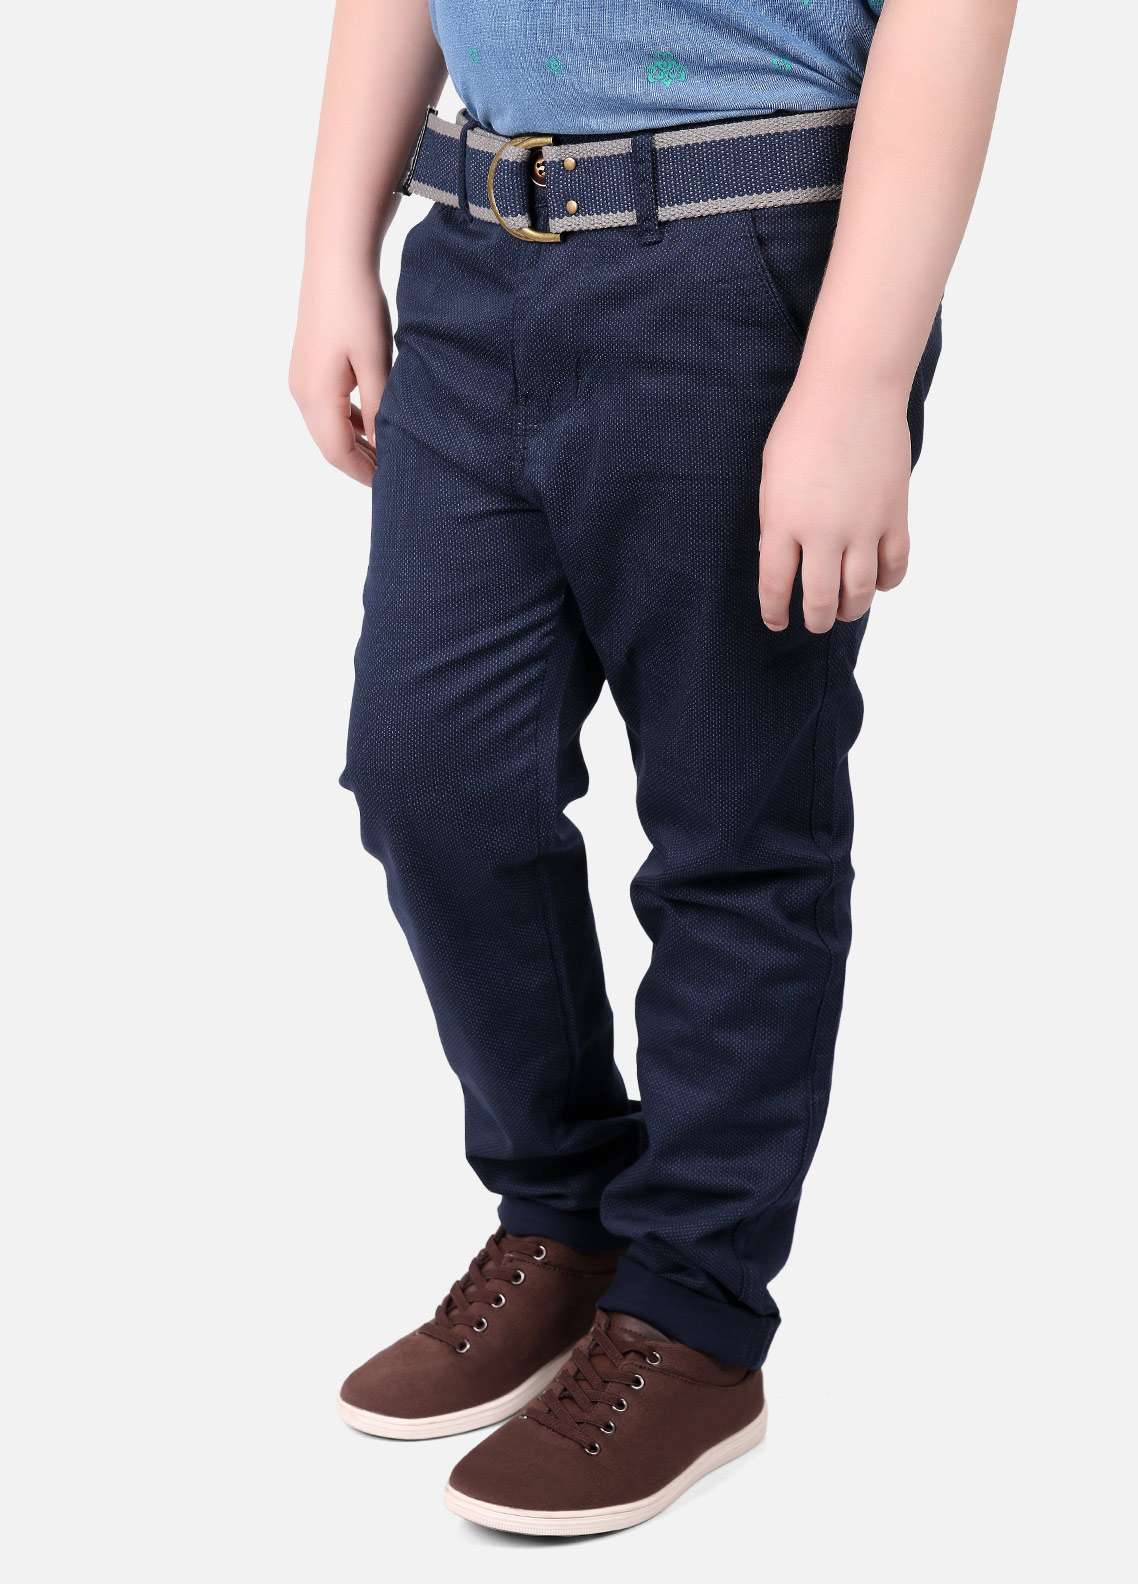 Edenrobe Cotton Printed Pants for Boys - Navy Blue EDK18P 5716